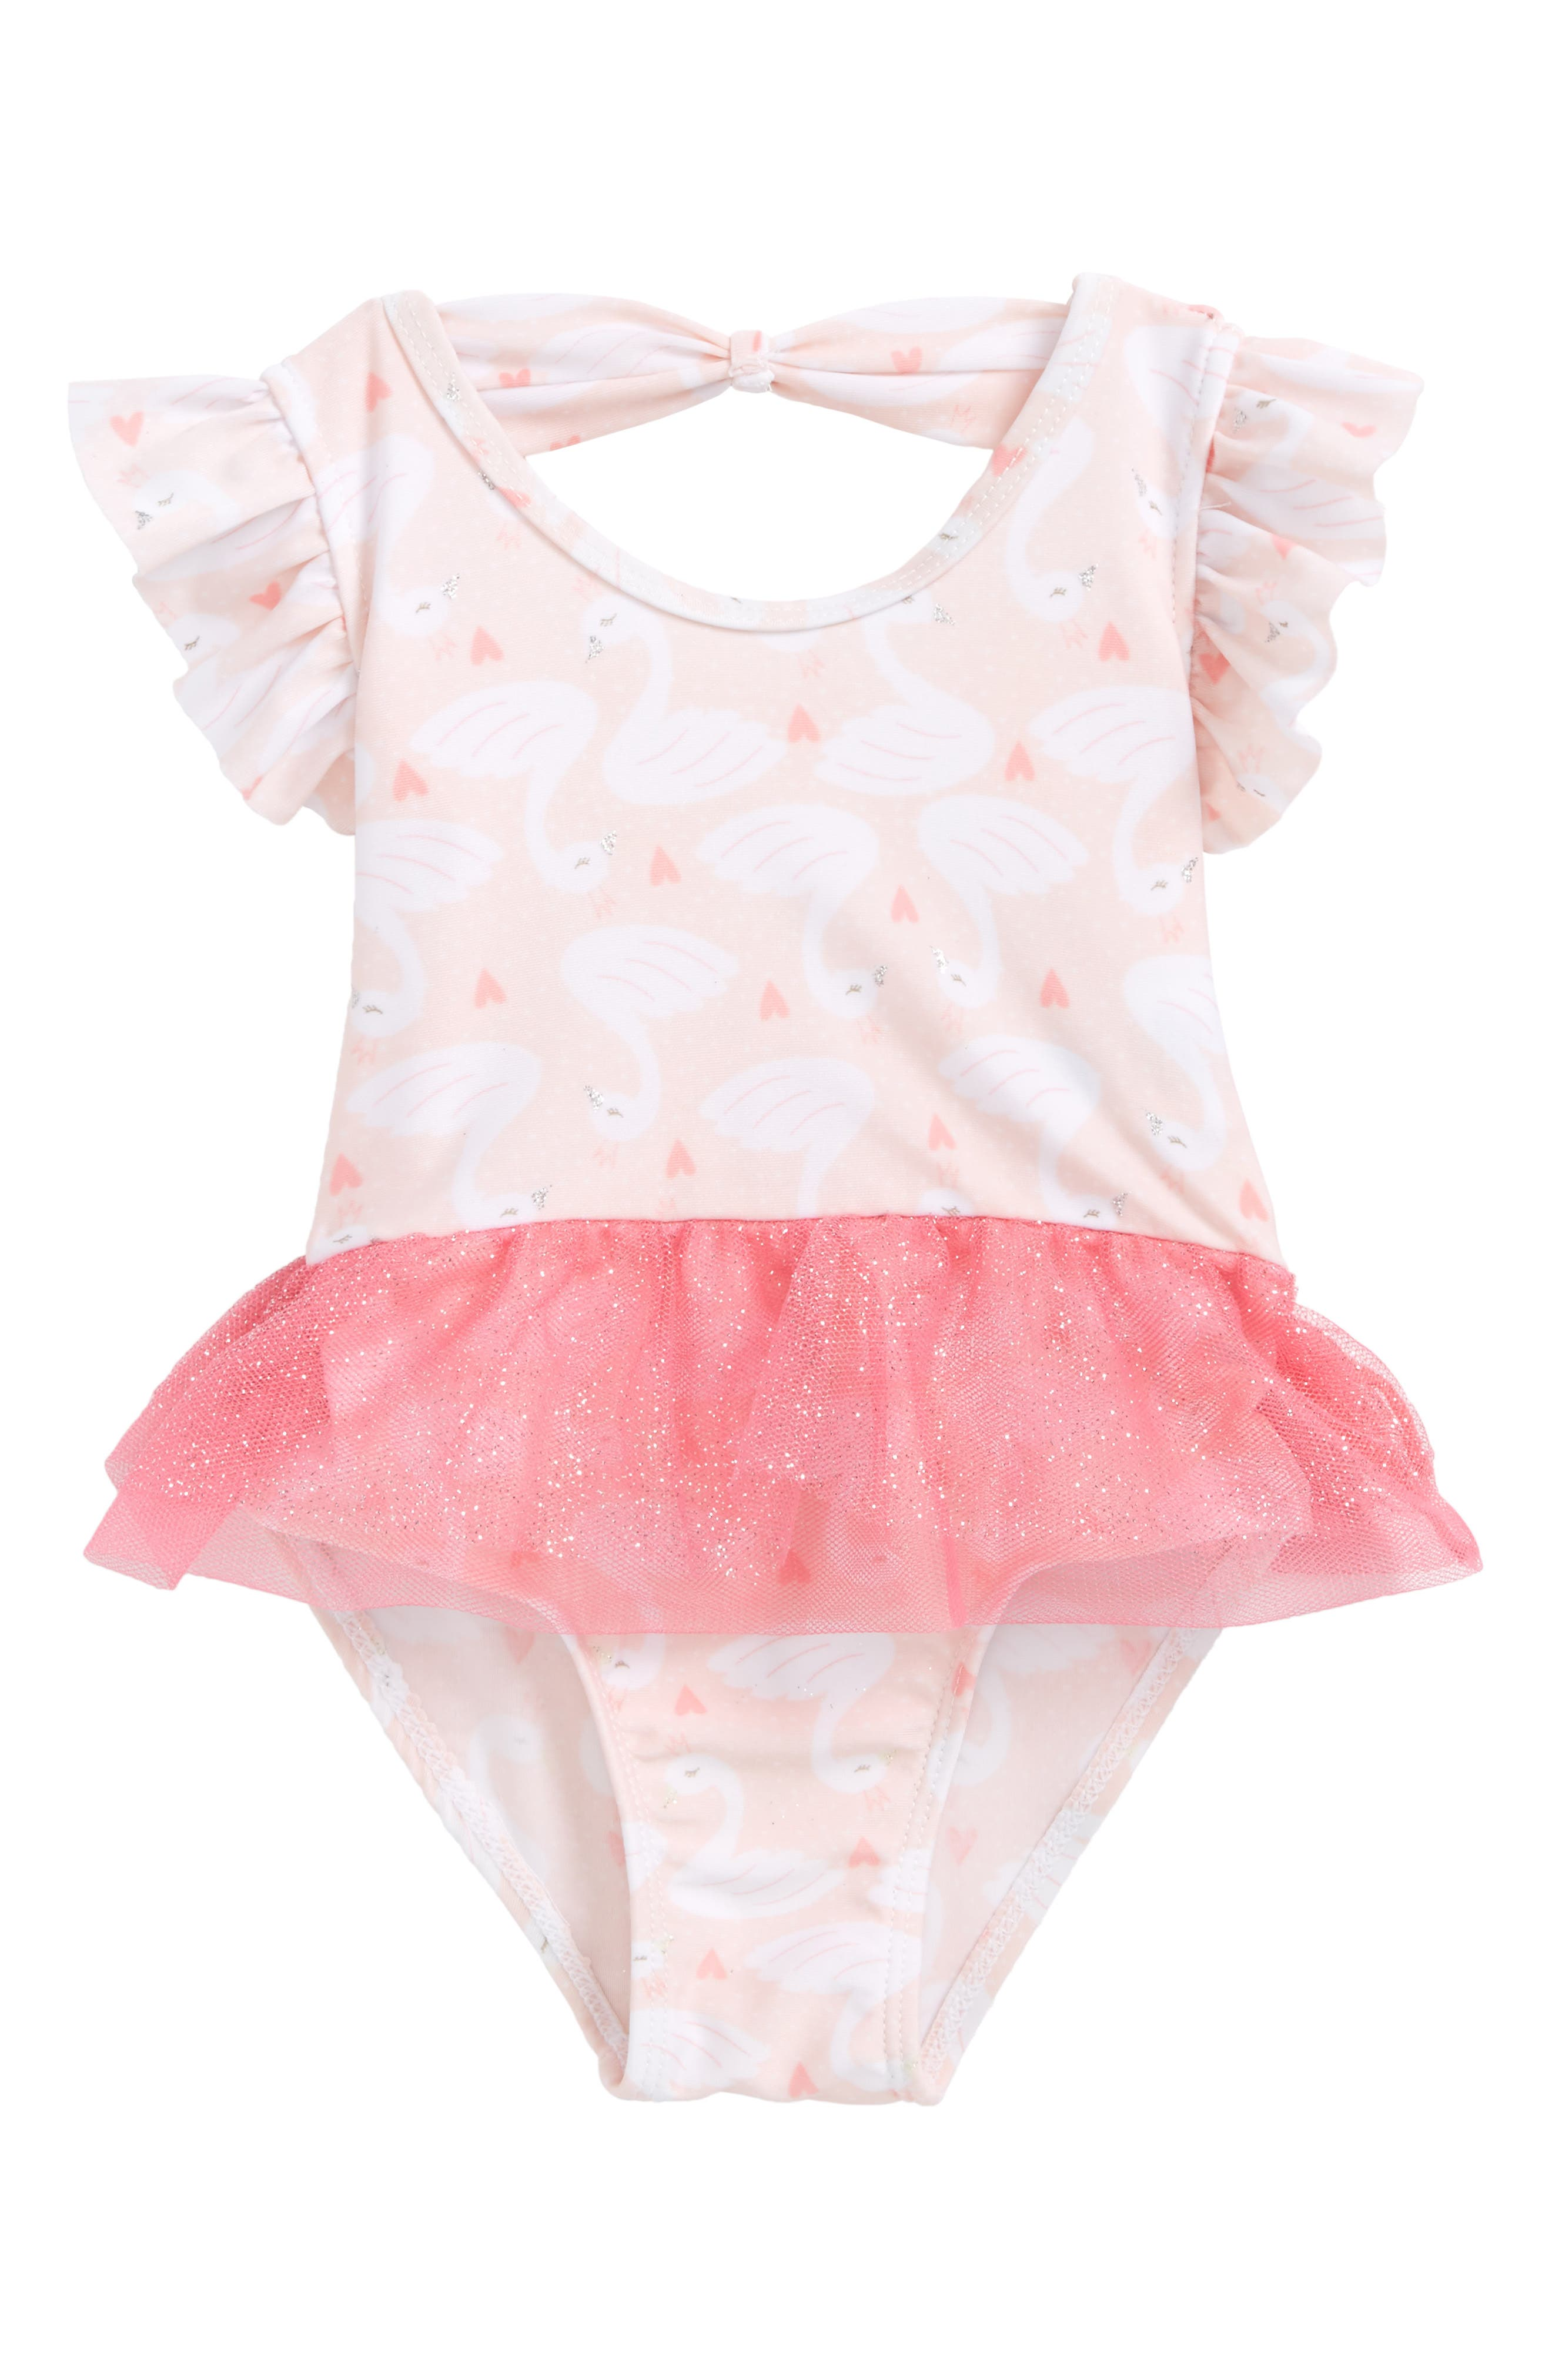 Main Image - Sol Swim Princess Swan One-Piece Swimsuit (Baby Girls)